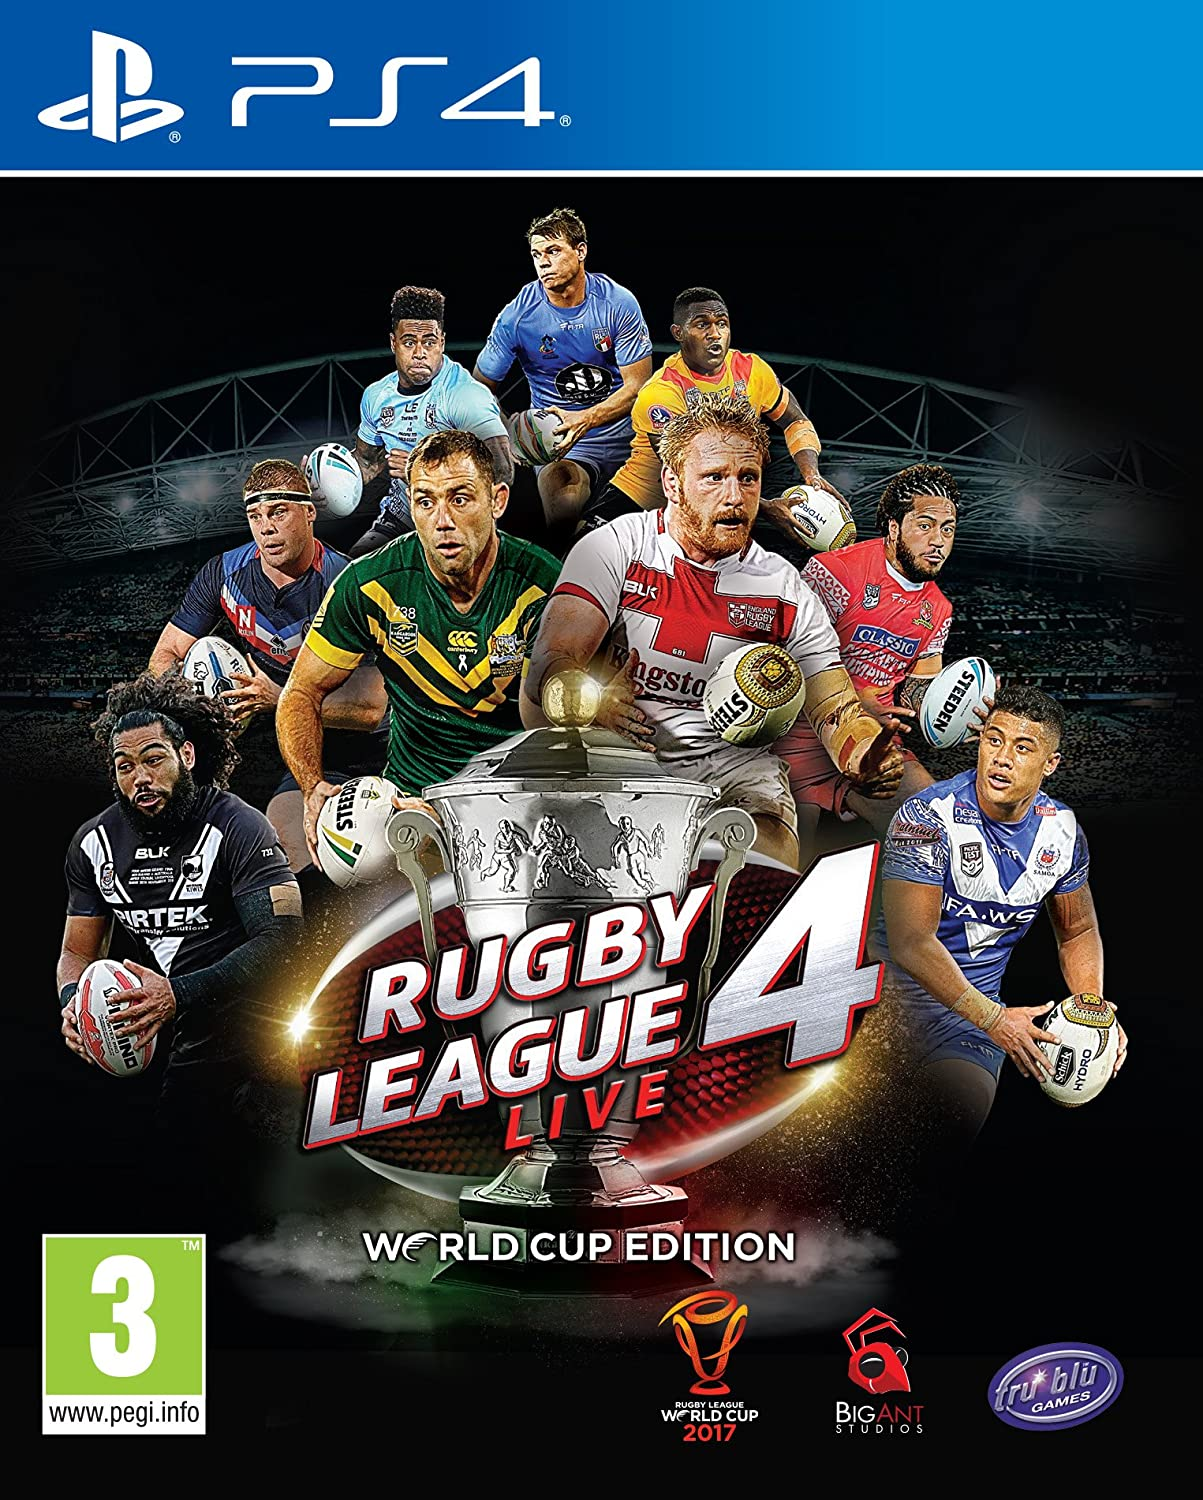 Rugby Selling and selling Gorgeous League Live 4 PS4 Edition Cup World